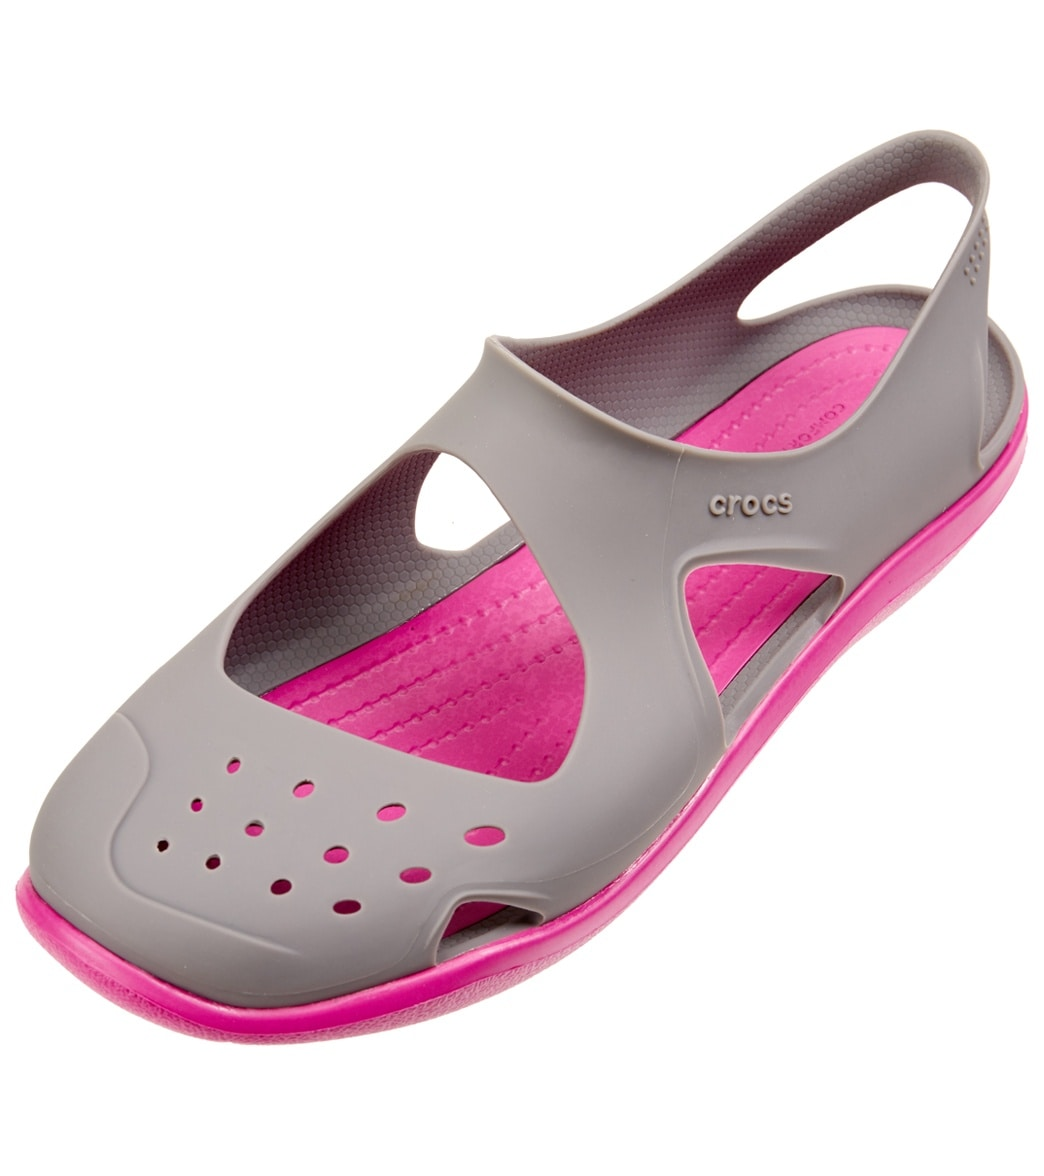 dfb304479638 Crocs Women s Swiftwater Wave at SwimOutlet.com